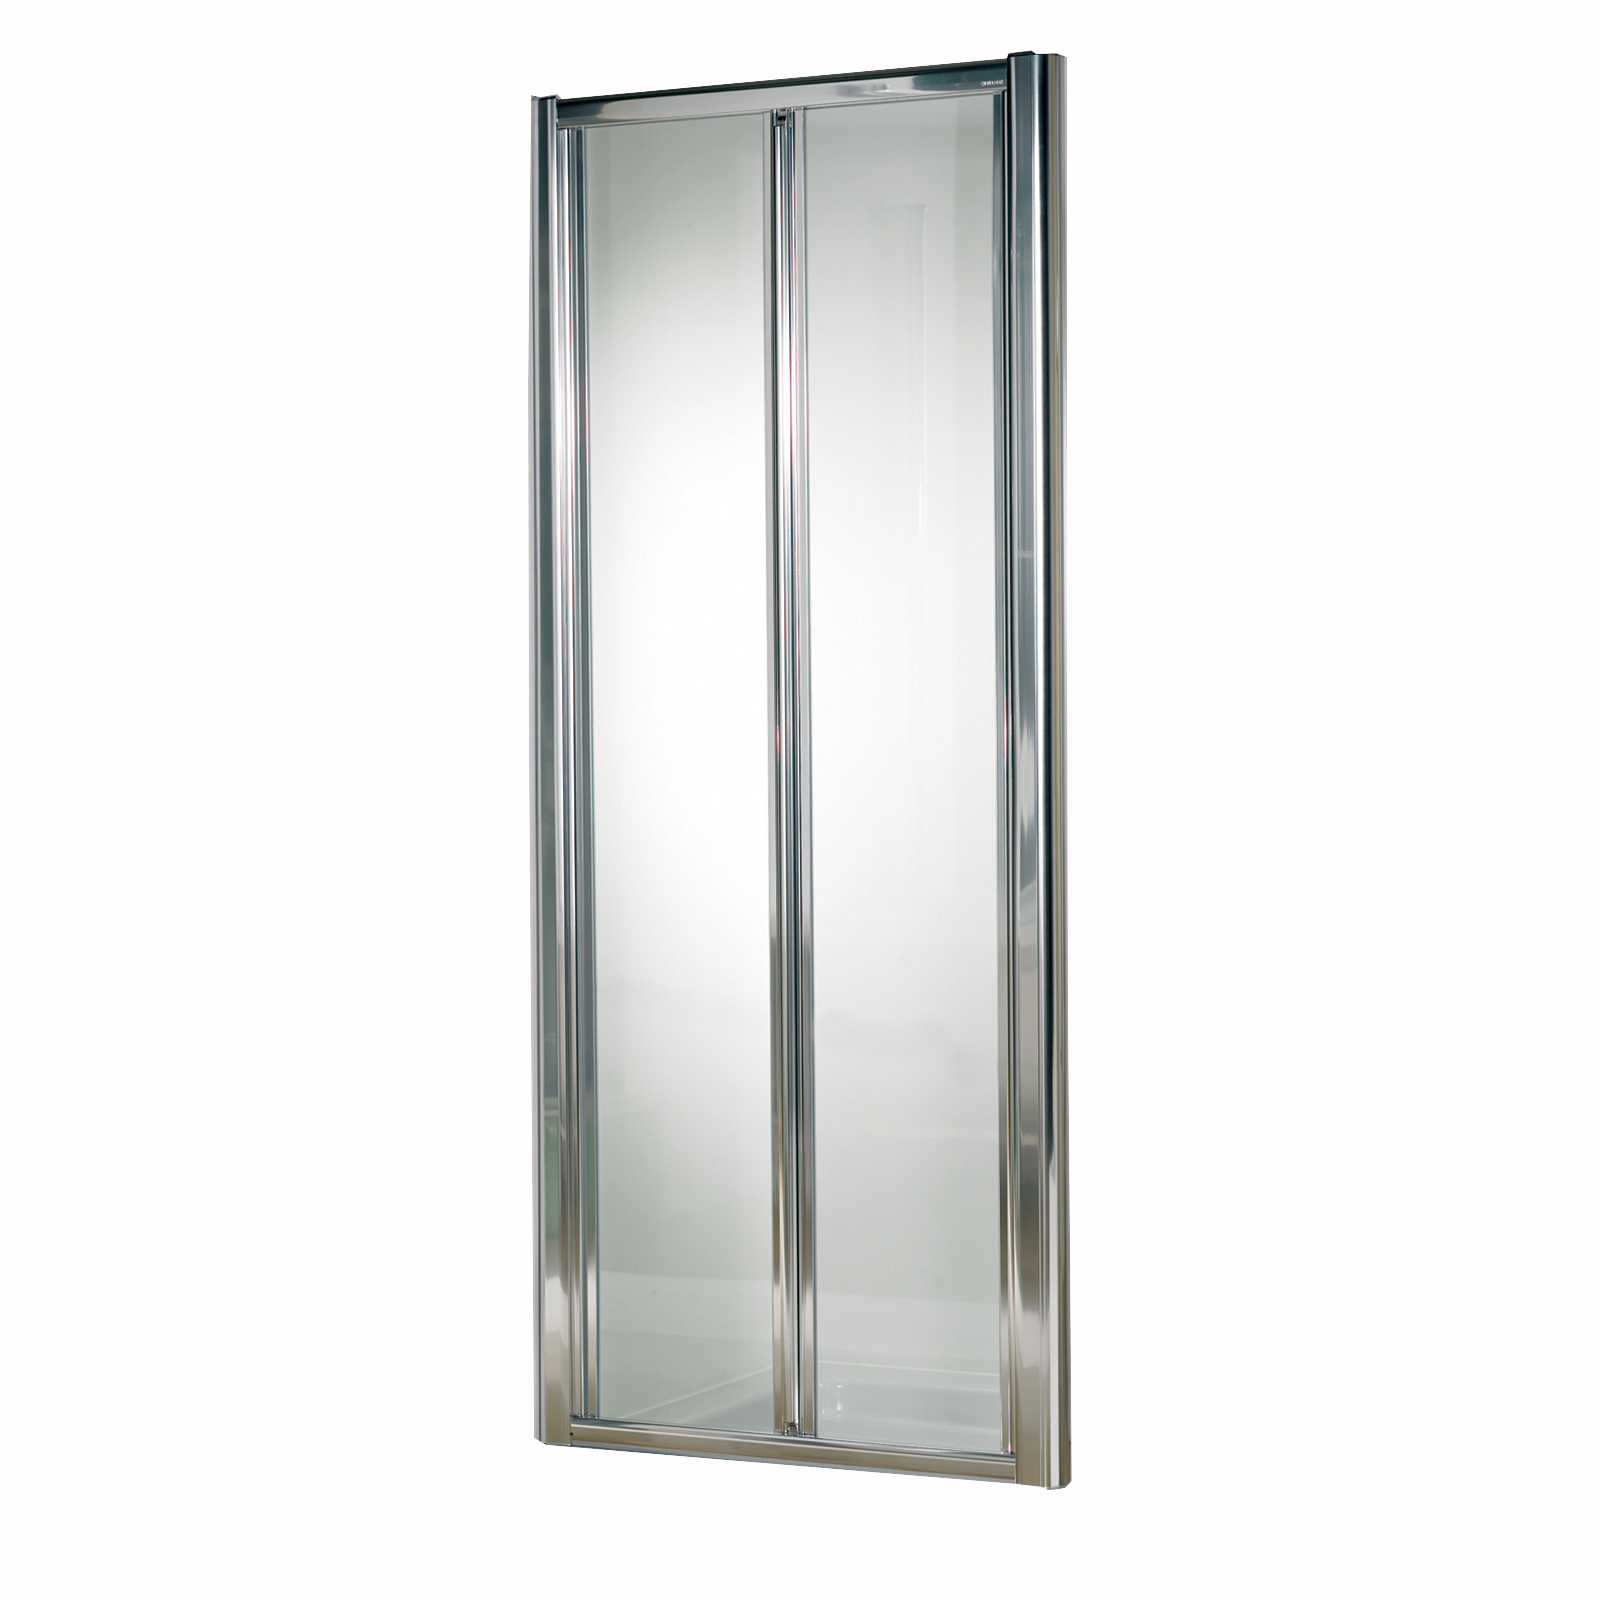 Kudos Original 900mm Bifold Shower Door 32110 At Allbits Plumbing